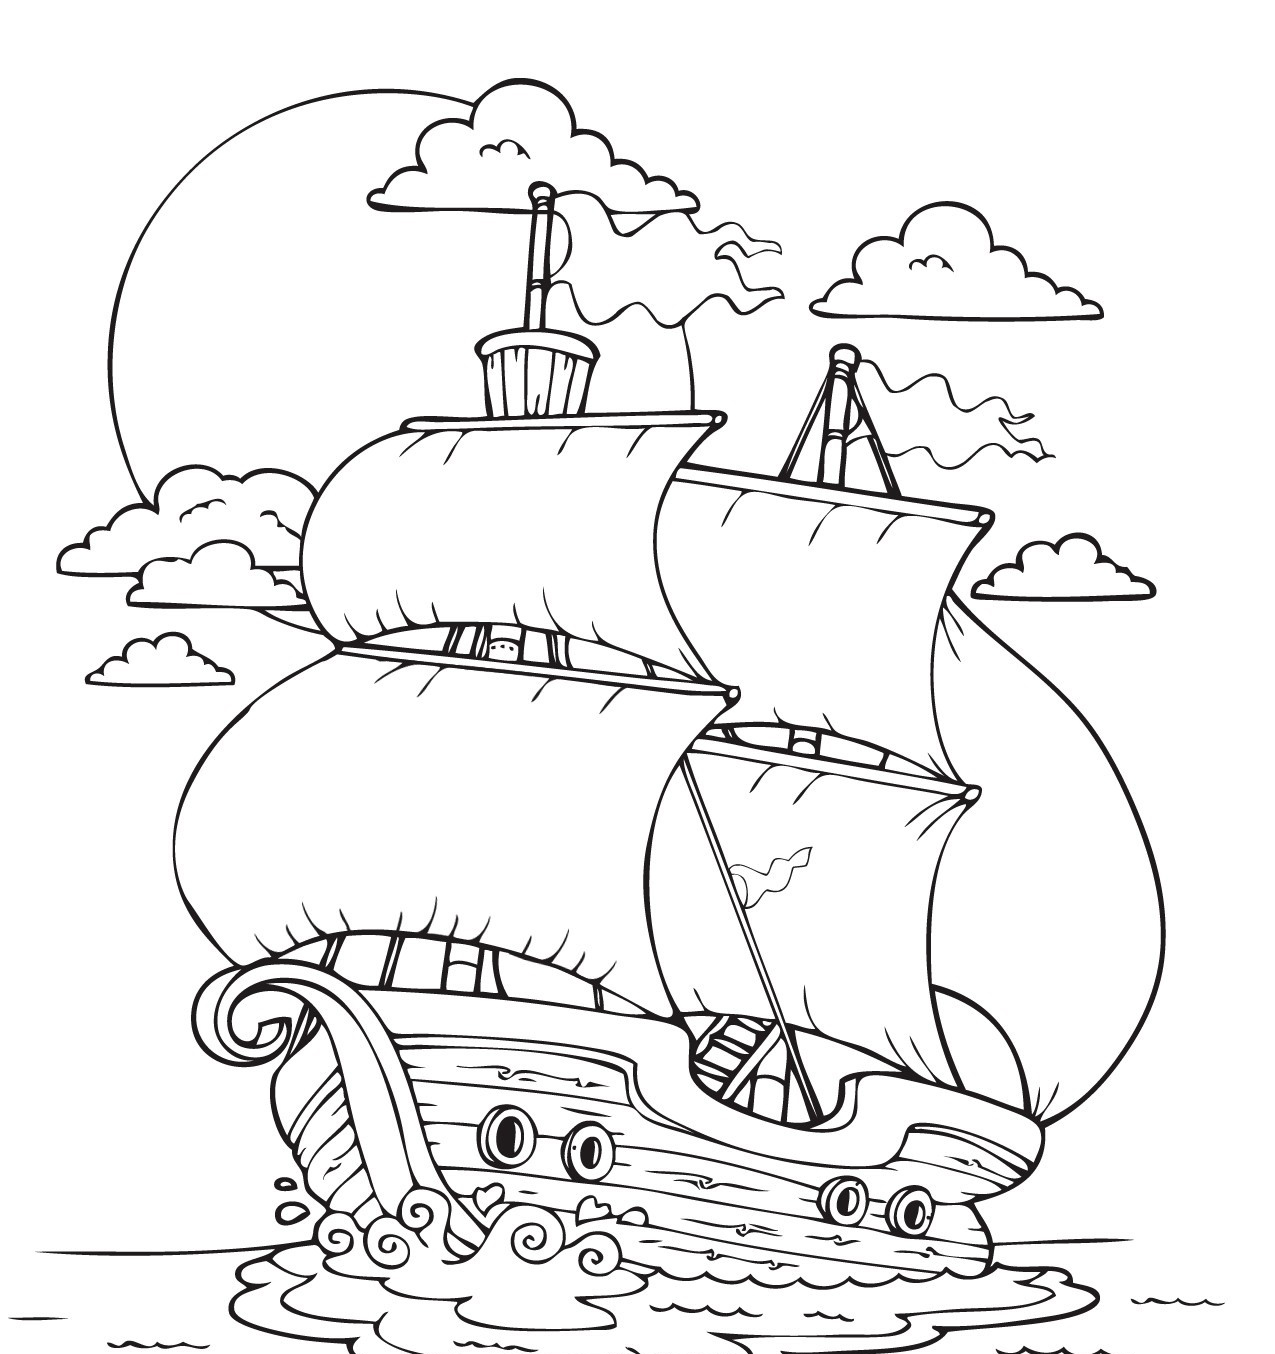 It's just a picture of Fabulous mayflower coloring page